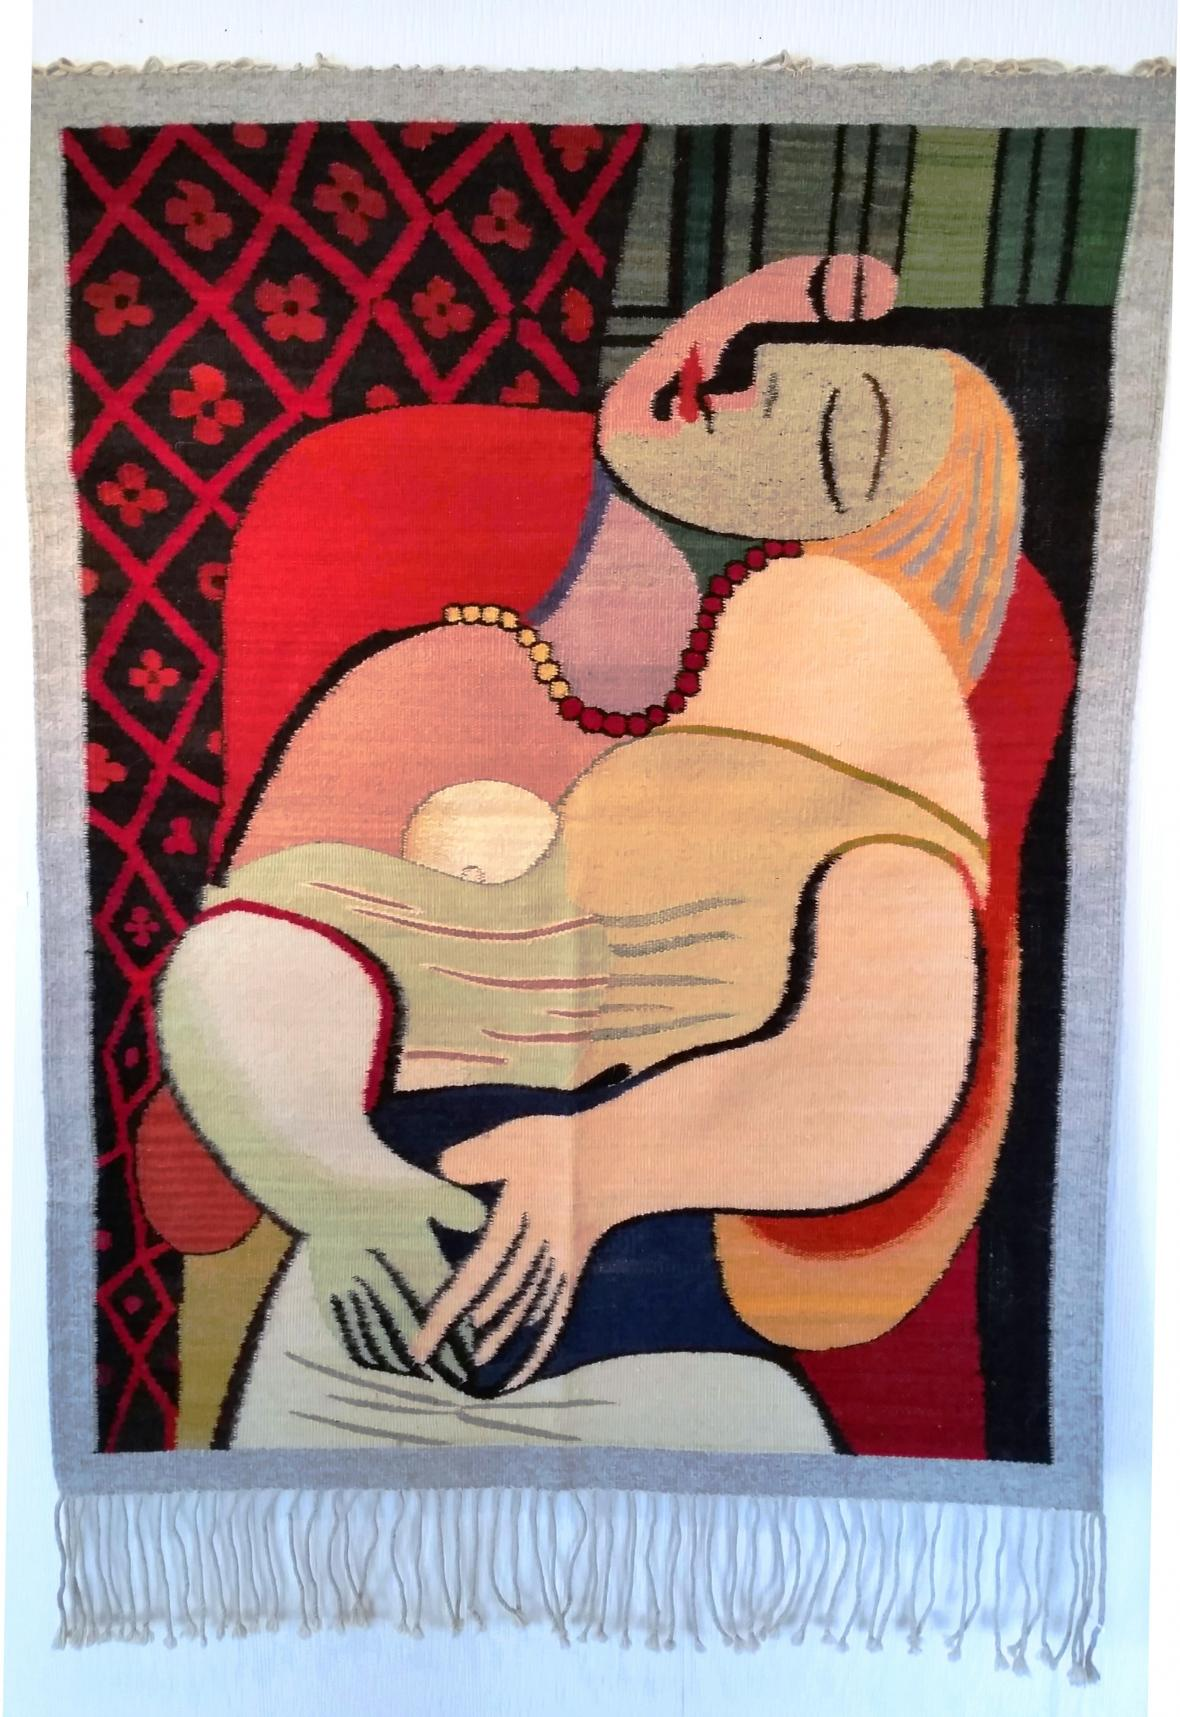 Mujer, (Woman), after Picasso